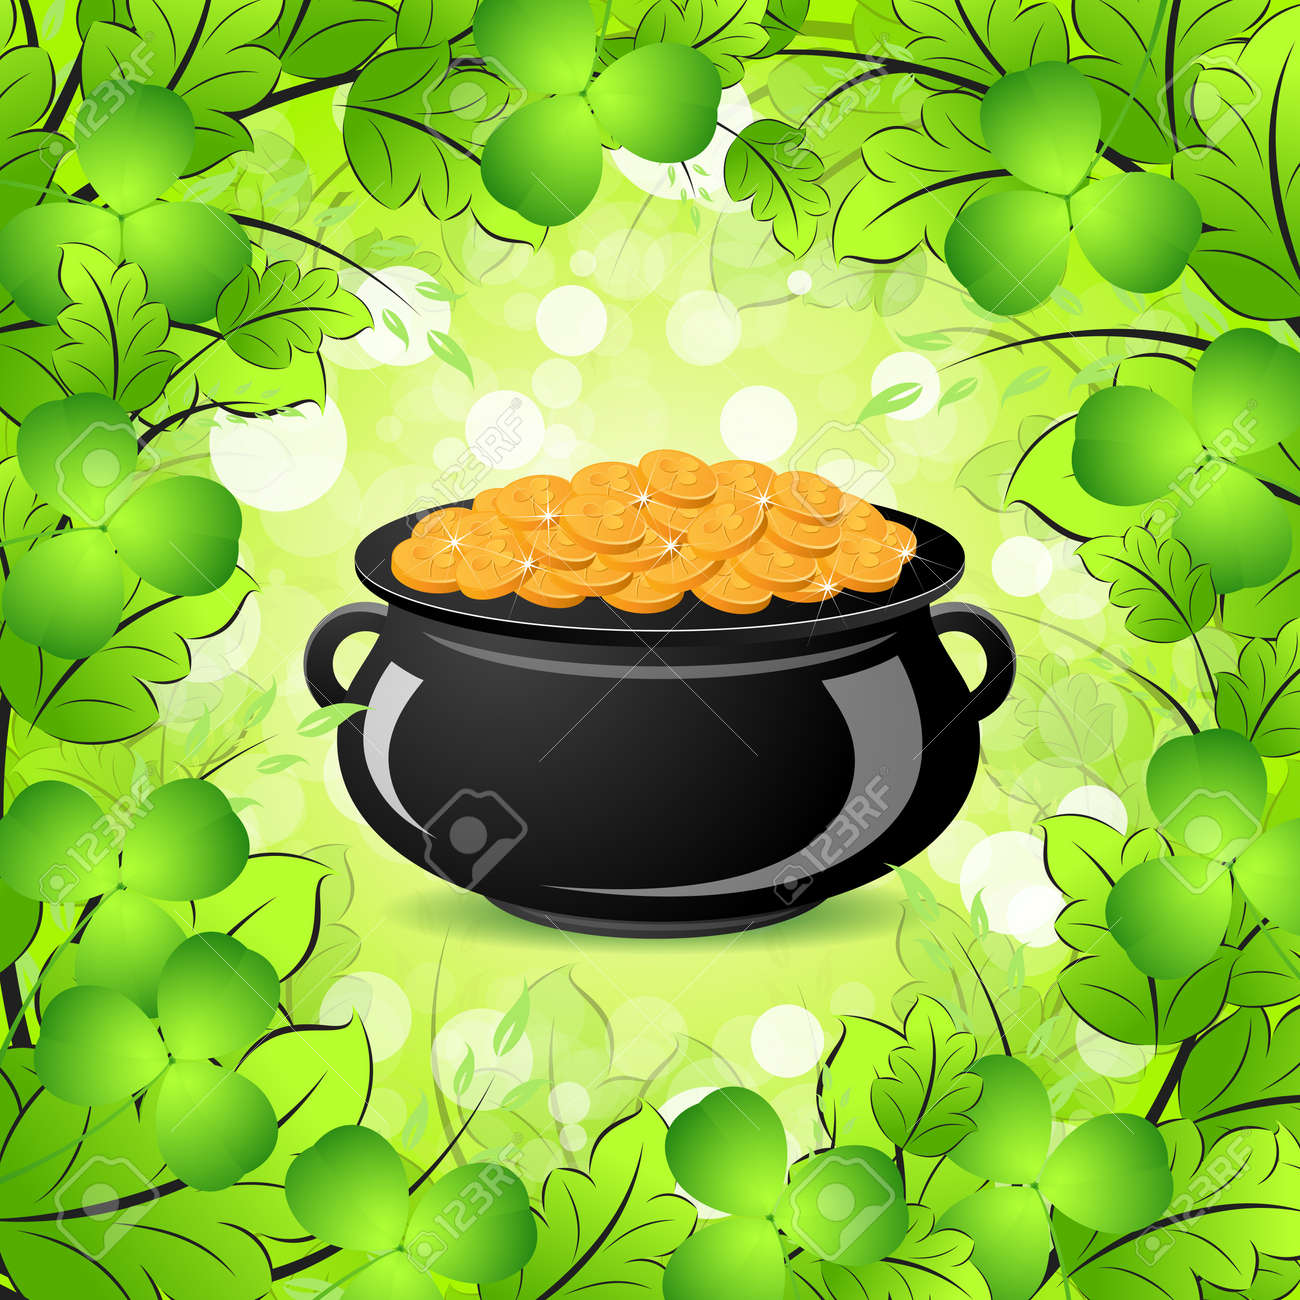 St. Patricks Day Cauldron with Gold Coins in Green leaves and Shamrocks Stock Vector - 17702508